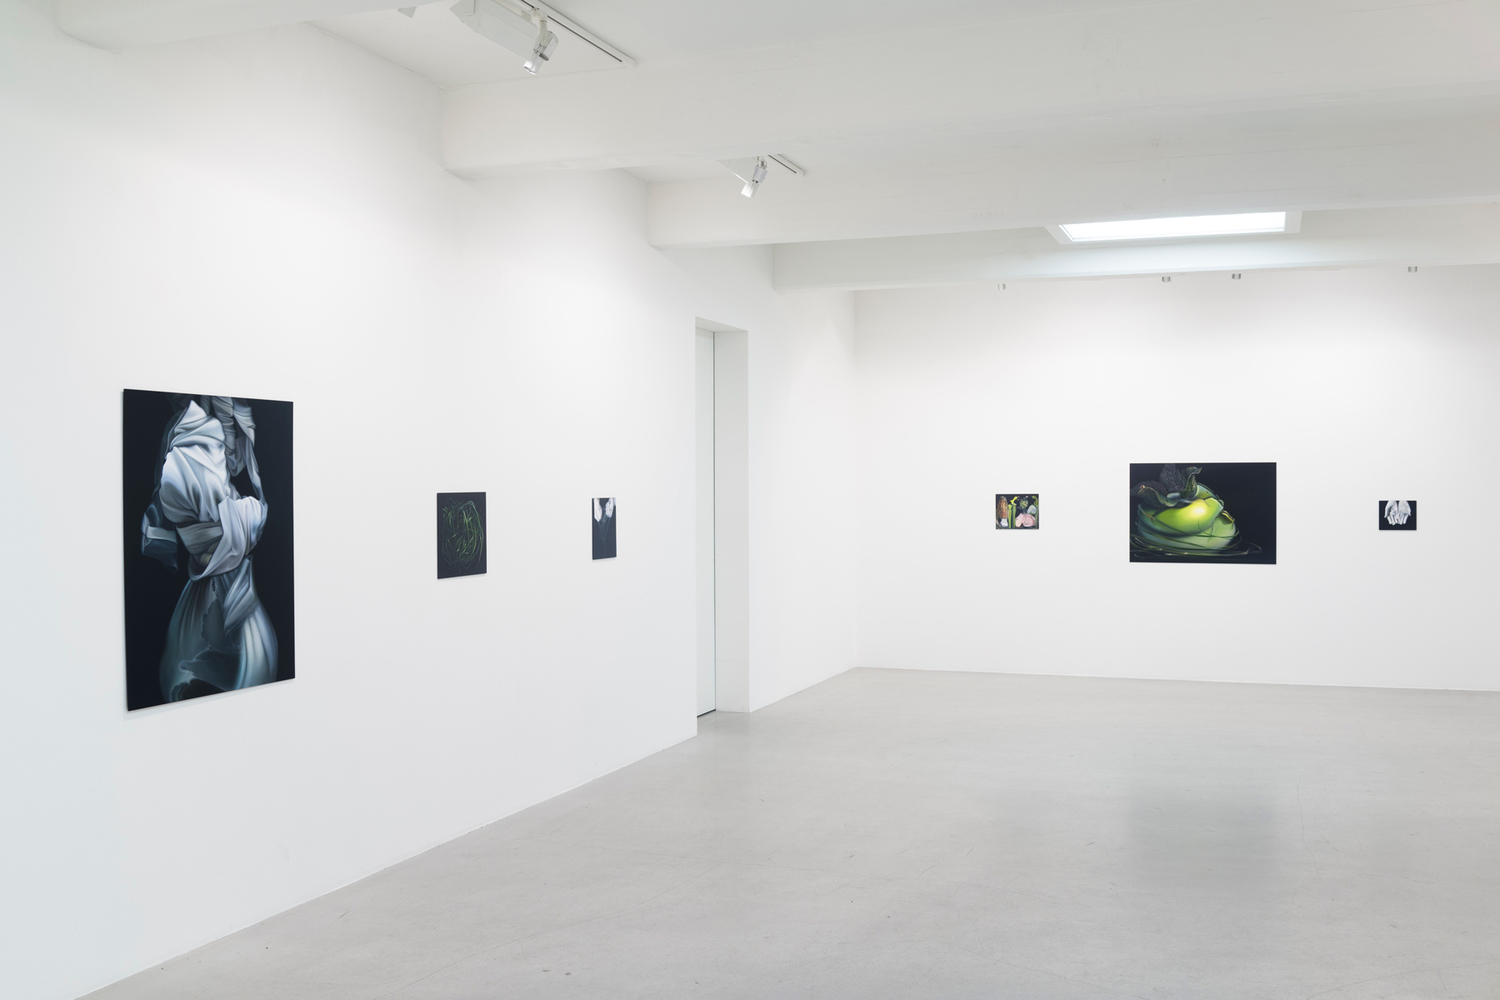 Copy of Christian Larsen gallery, 2016, Stockholm